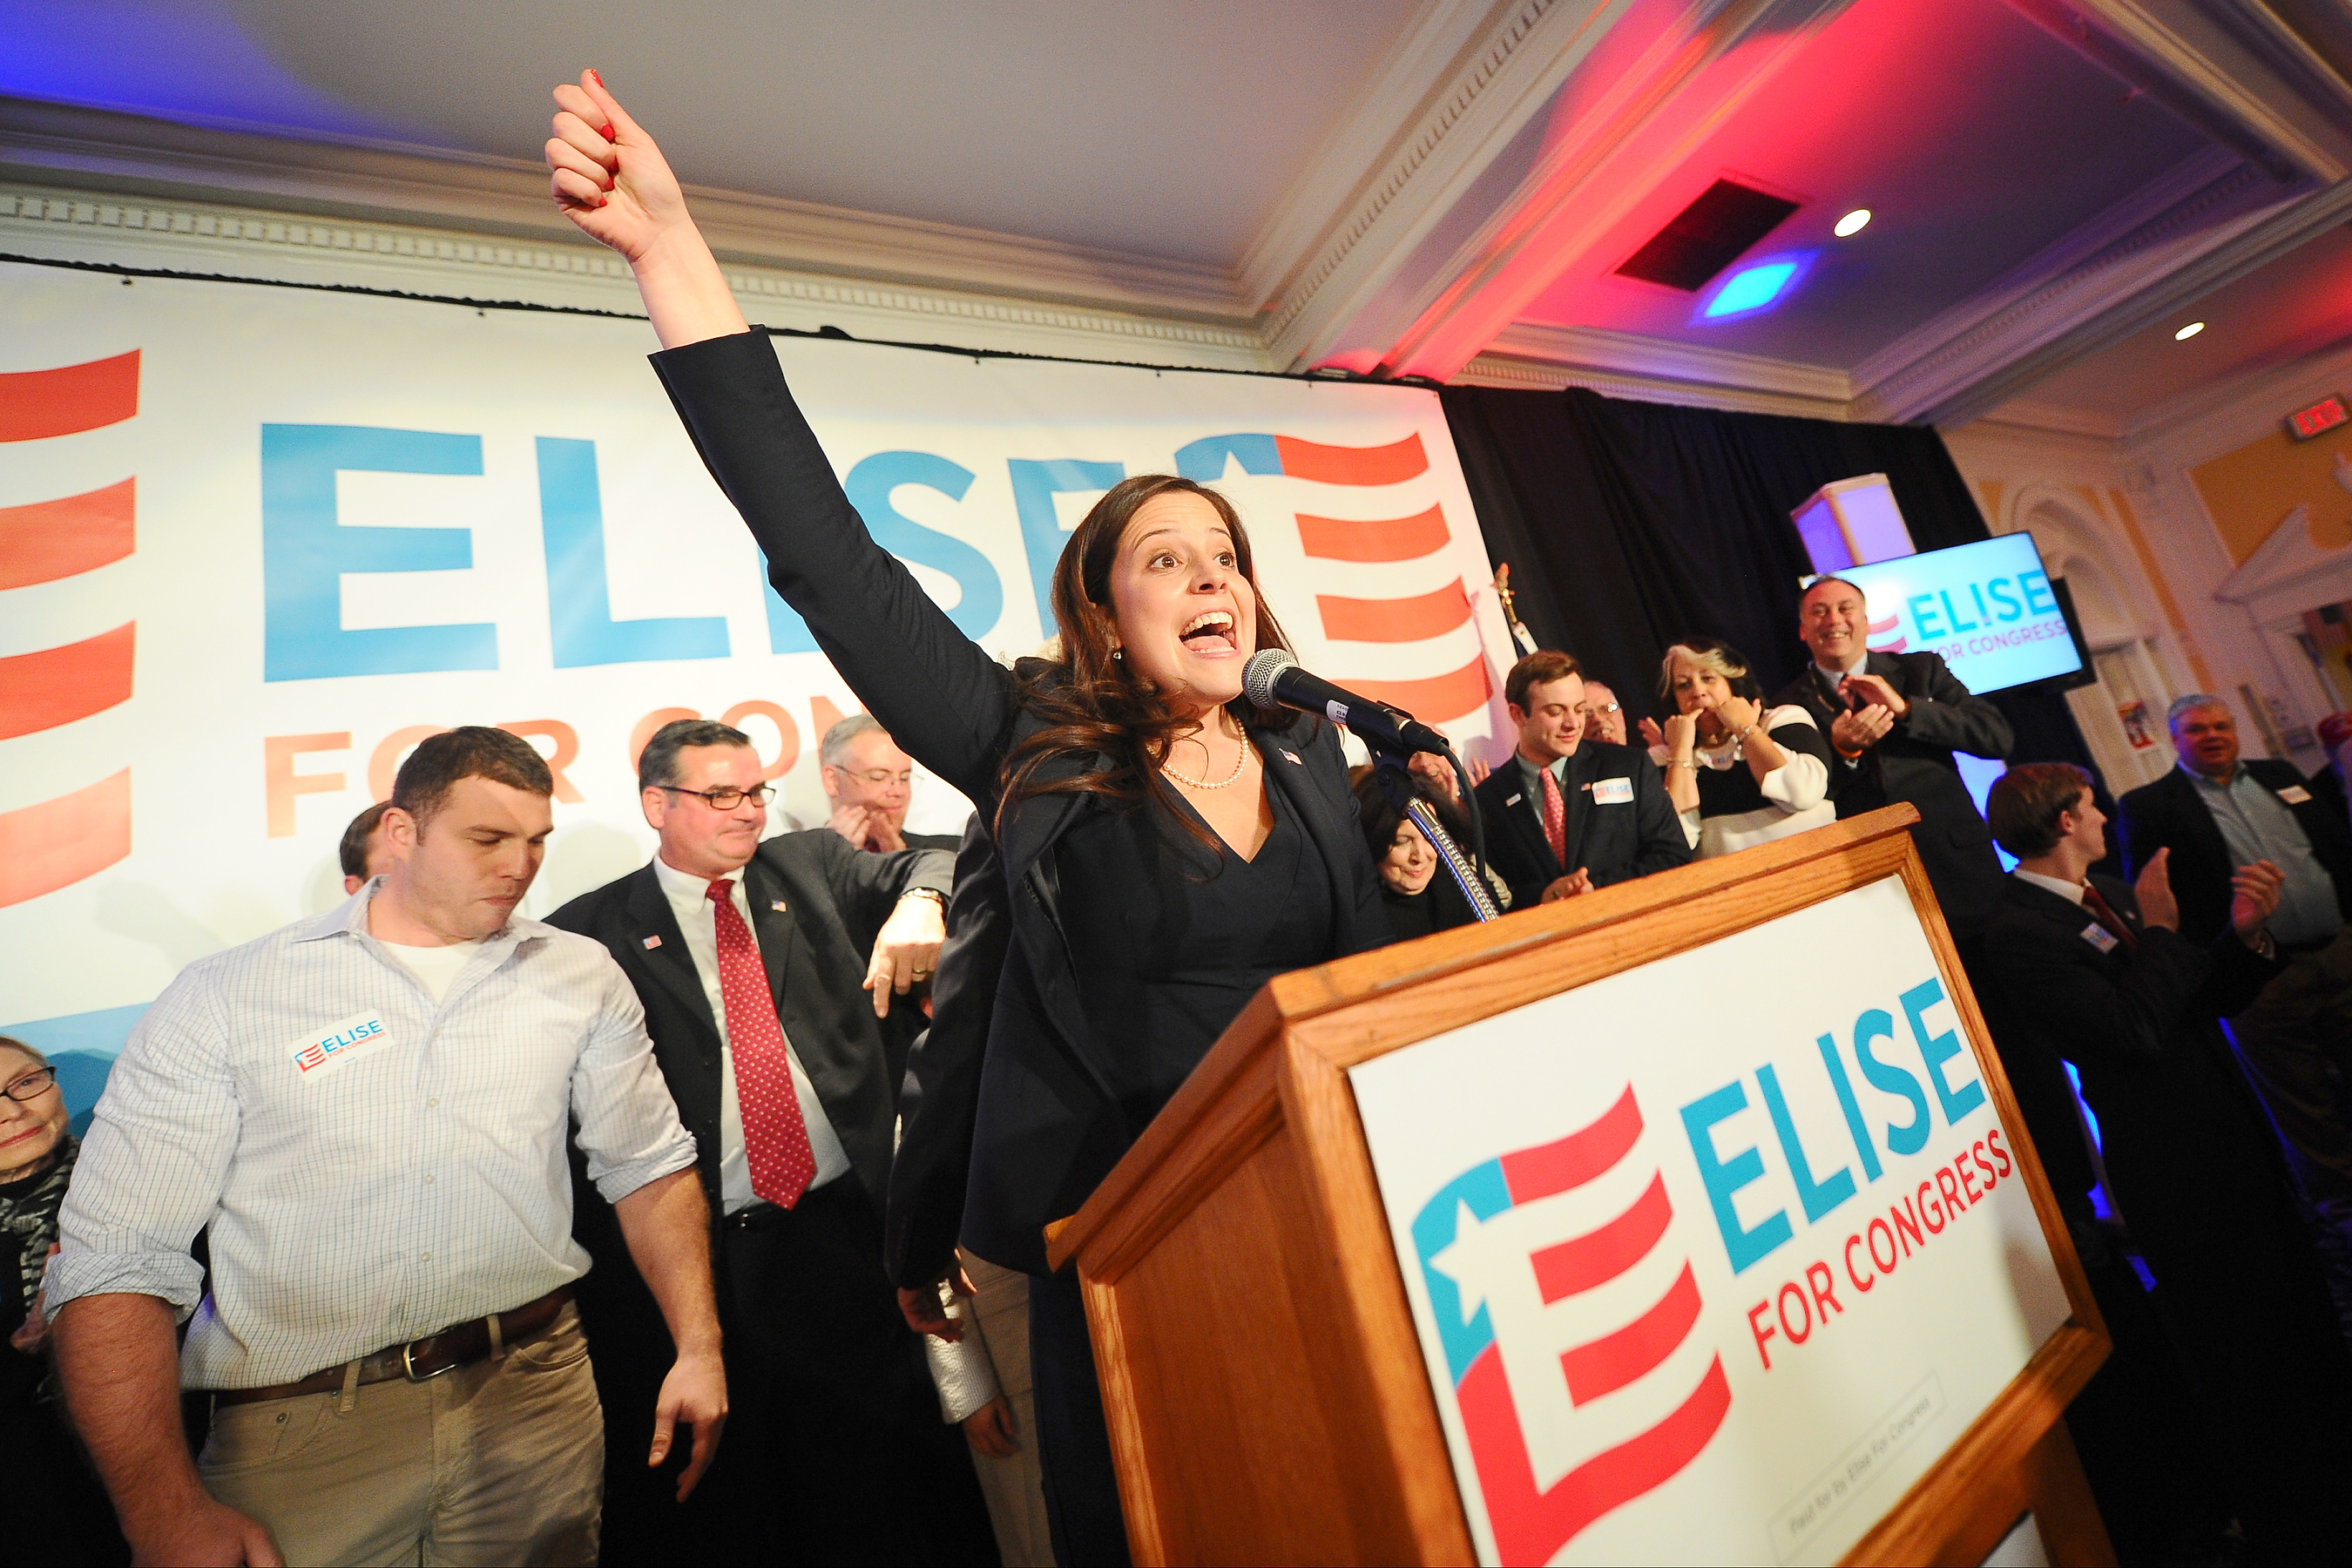 Elise Stefanik celebrates her win in the 21st Congressional district on election night at the Queensbury Hotel in Glens Falls, N.Y., on Tuesday, Nov. 4, 2014.